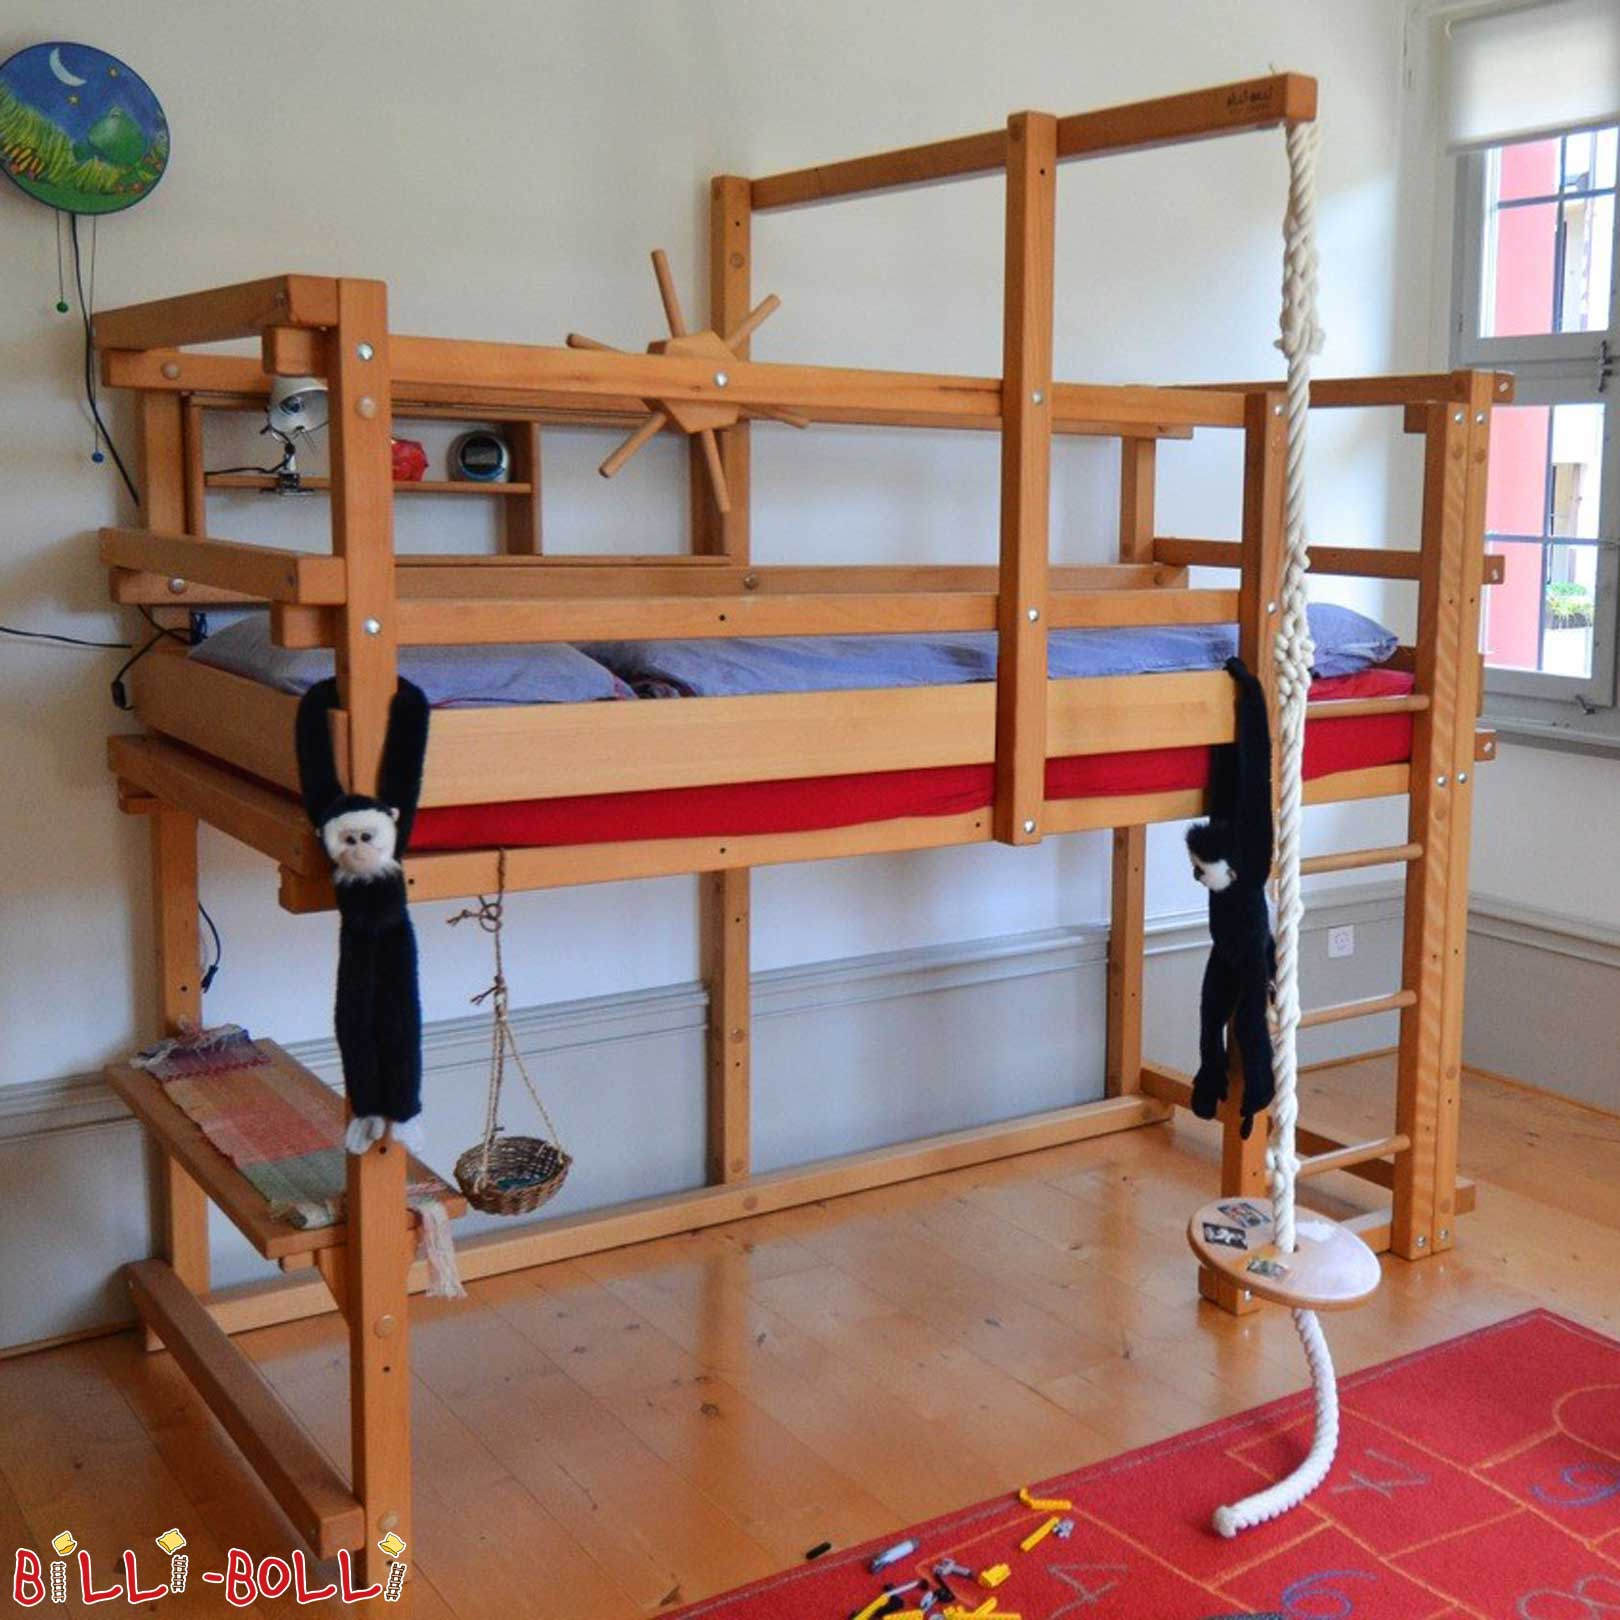 The Low Loft Bed Is Made Of Oil Waxed Beech And Has Been Equipped With